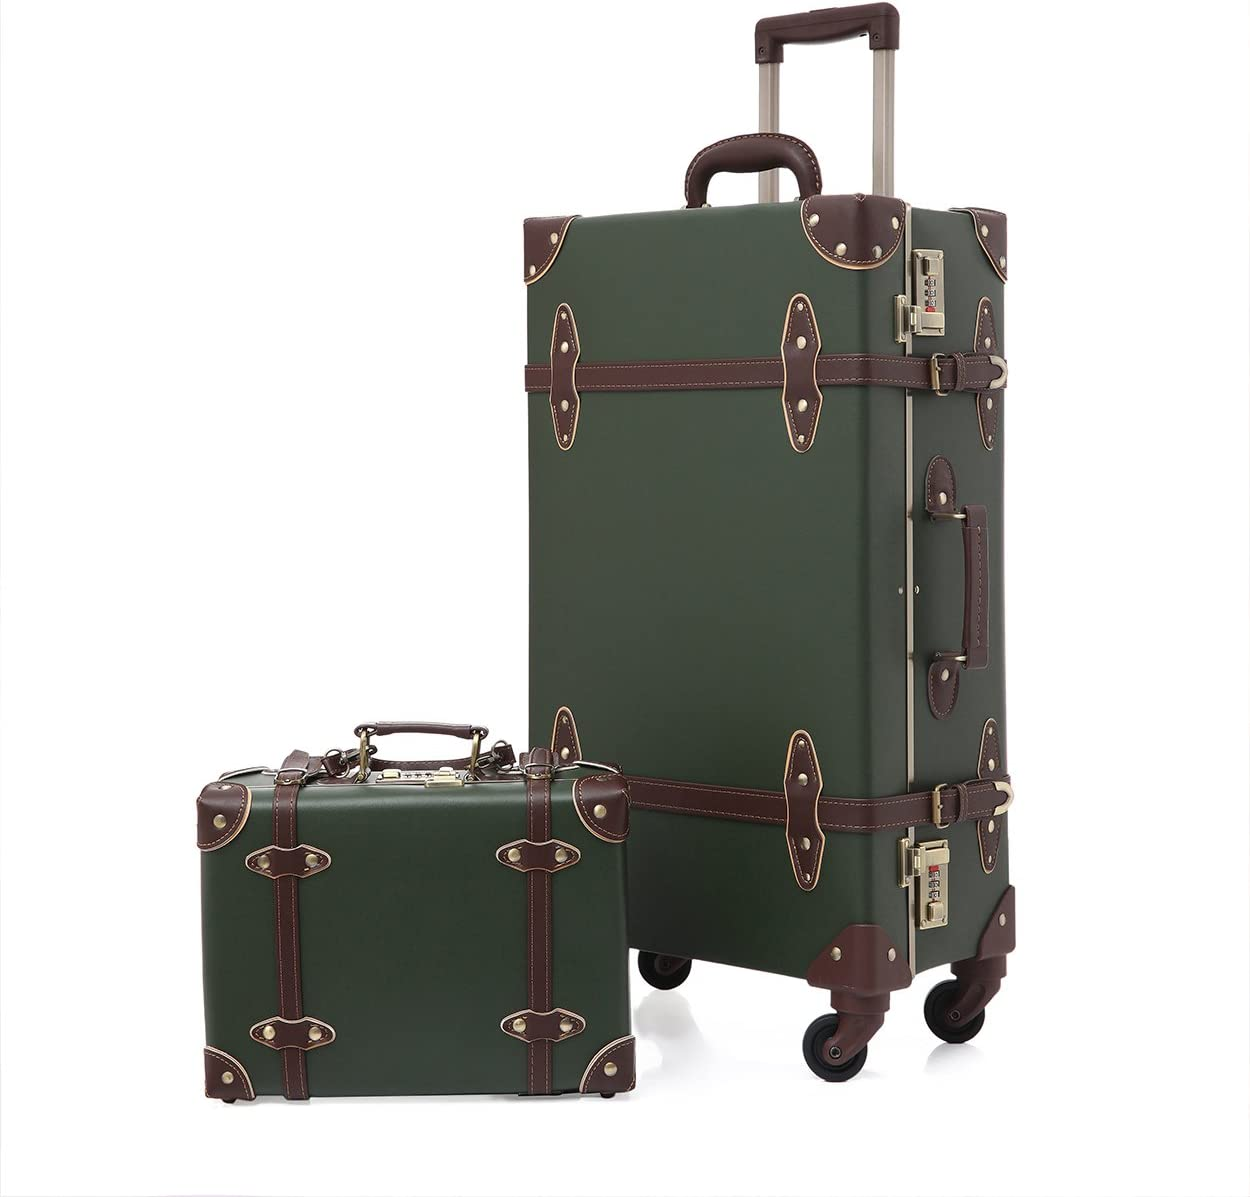 2Pcs Pu Leather Carry On Luggage Set Vintage Trolley Suitcase Retro Style Travelers Choice Rolling Trunk with Spinner Wheels ArmyGreen